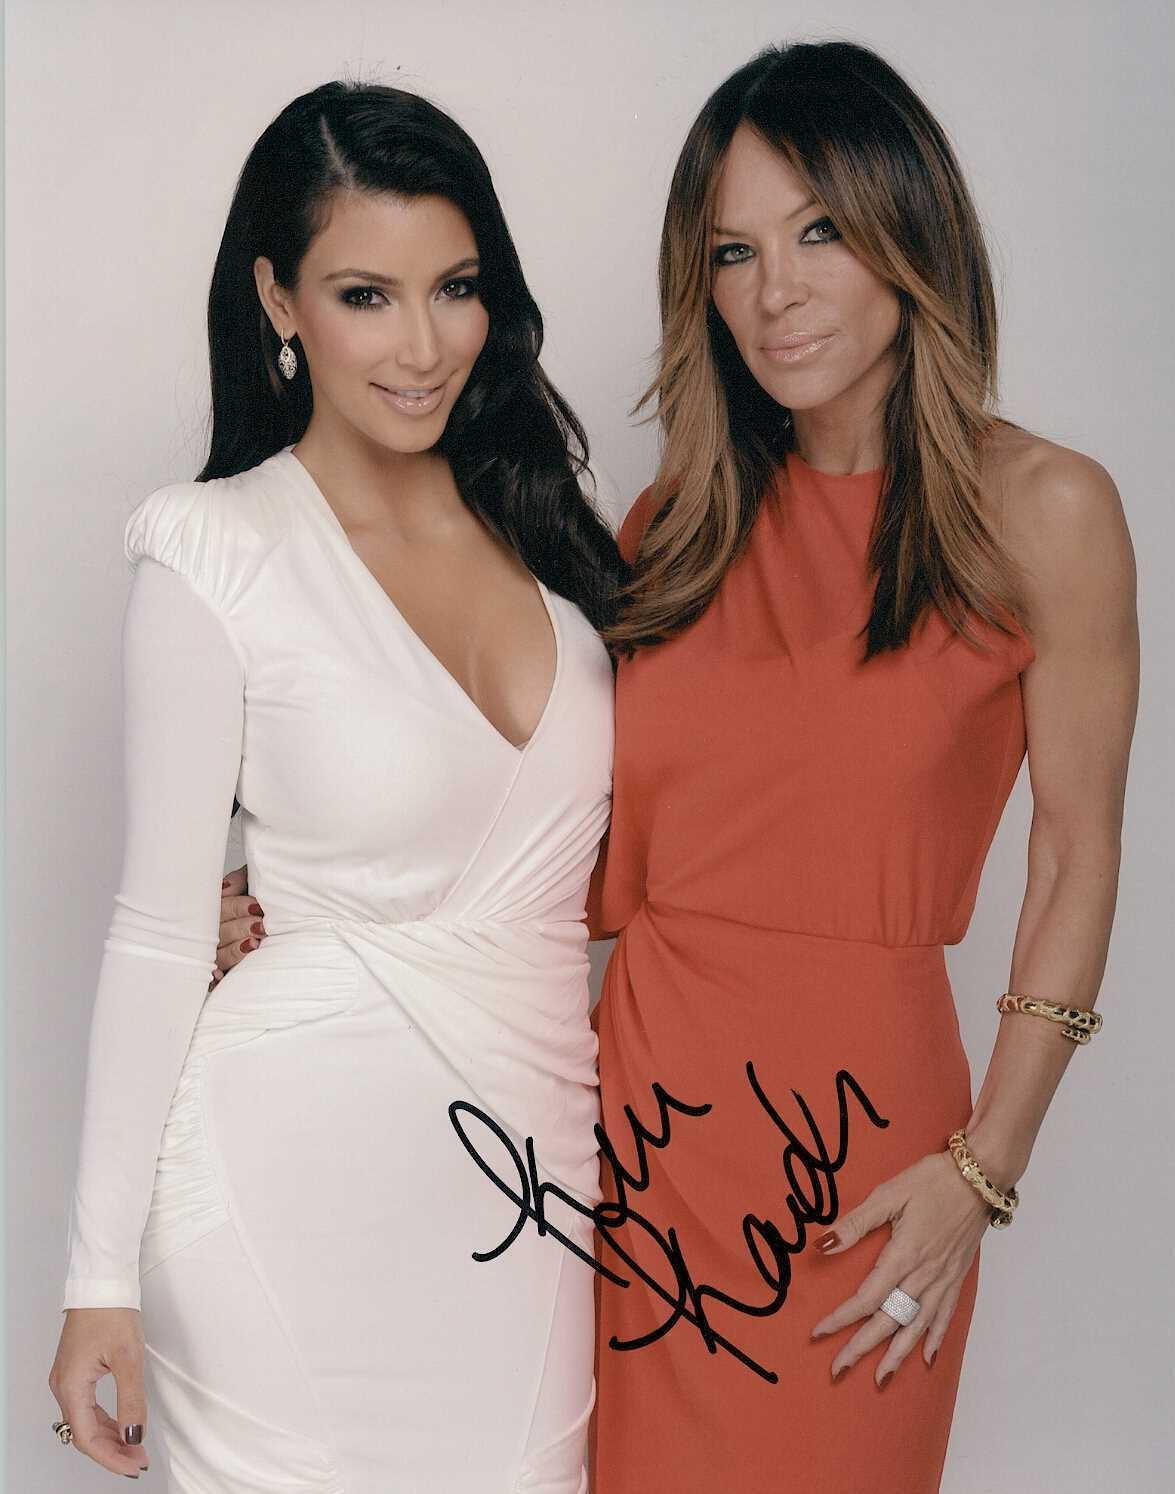 Primary image for Kim Kardashian Signed Autographed Glossy 8x10 Photo